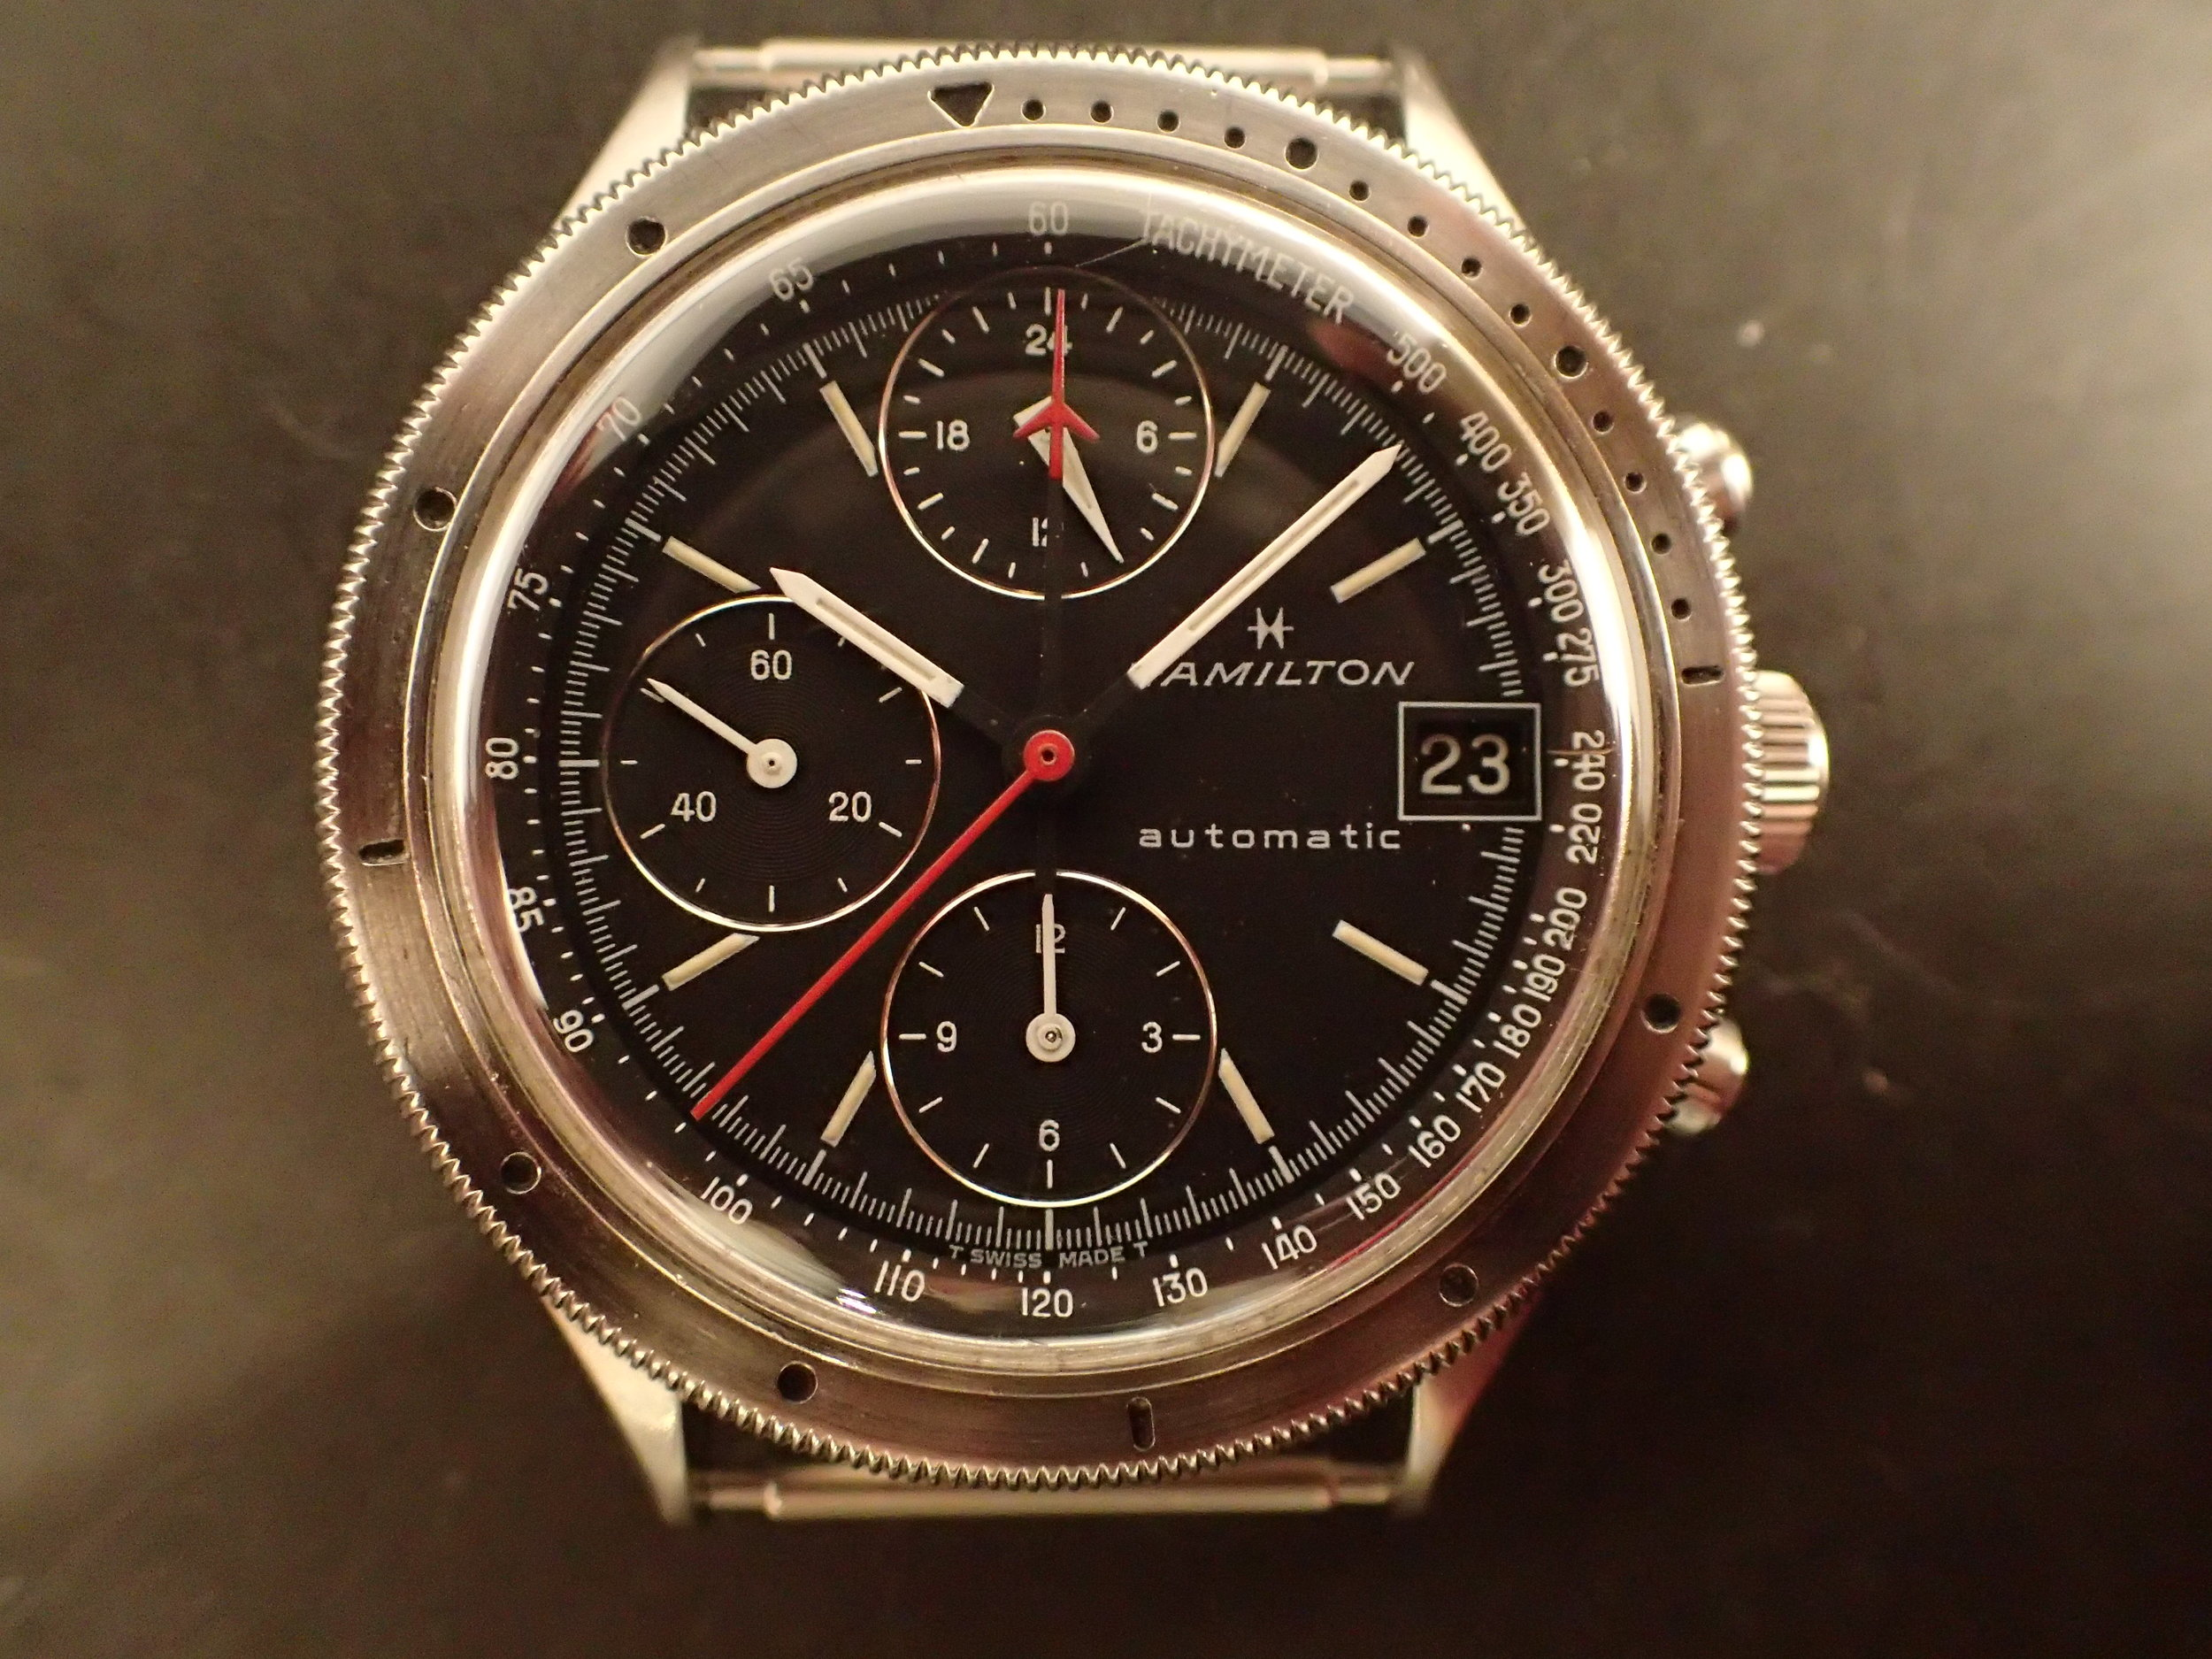 The Hamilton HTC, seen in a wide variety of dials and colors.